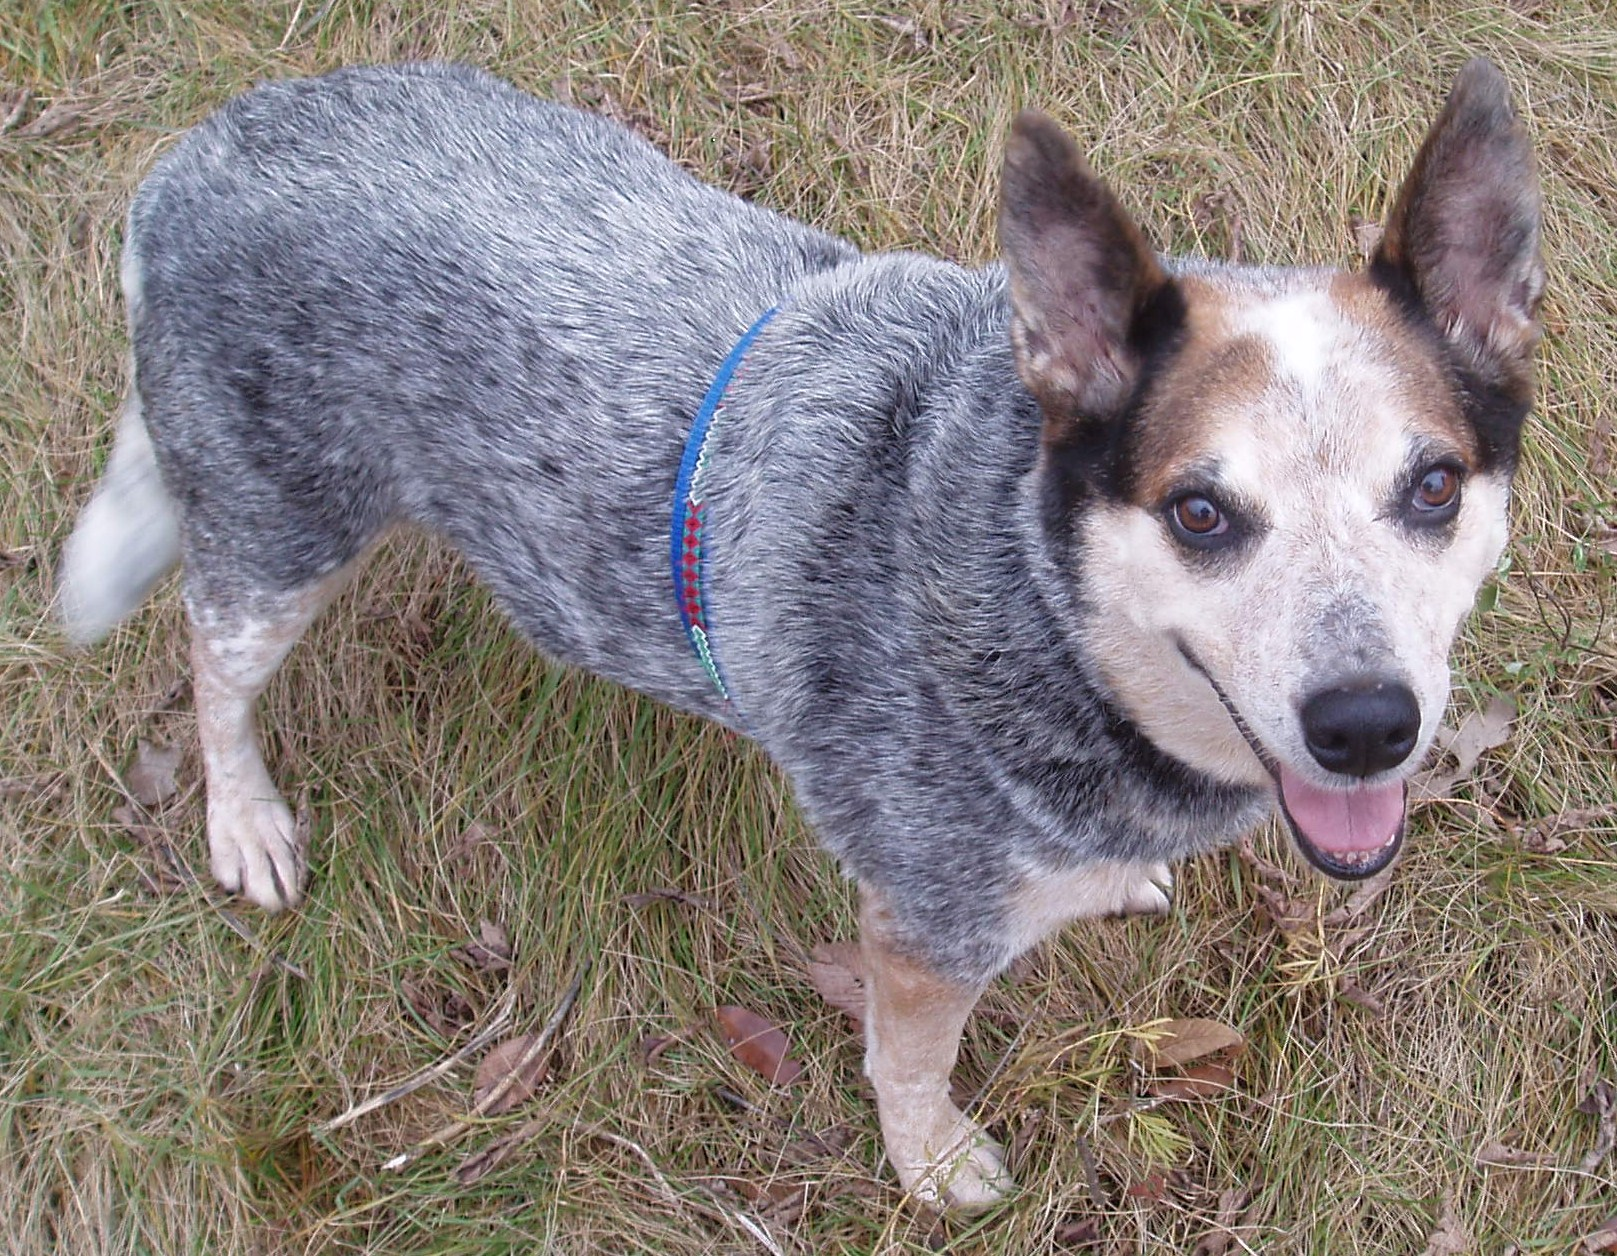 blue heeler Wallpaper and Background Image 1617x1256 ID453430 1617x1256